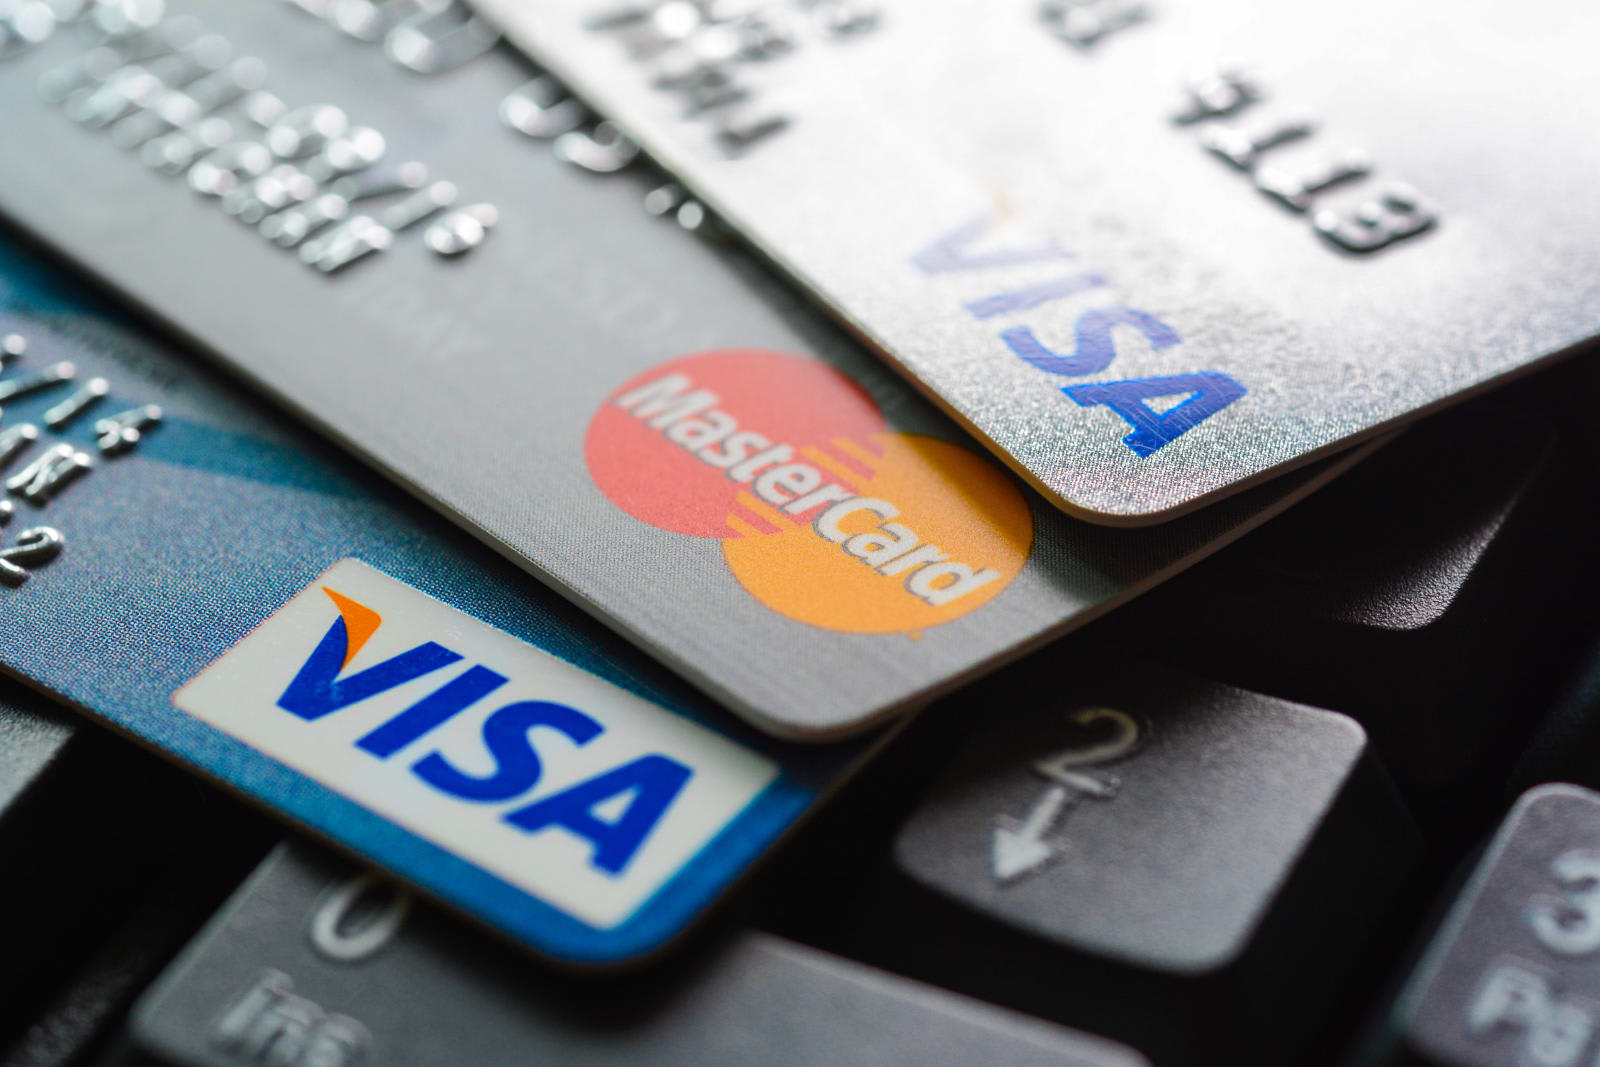 Credit card companies unite for a checkout button to take on